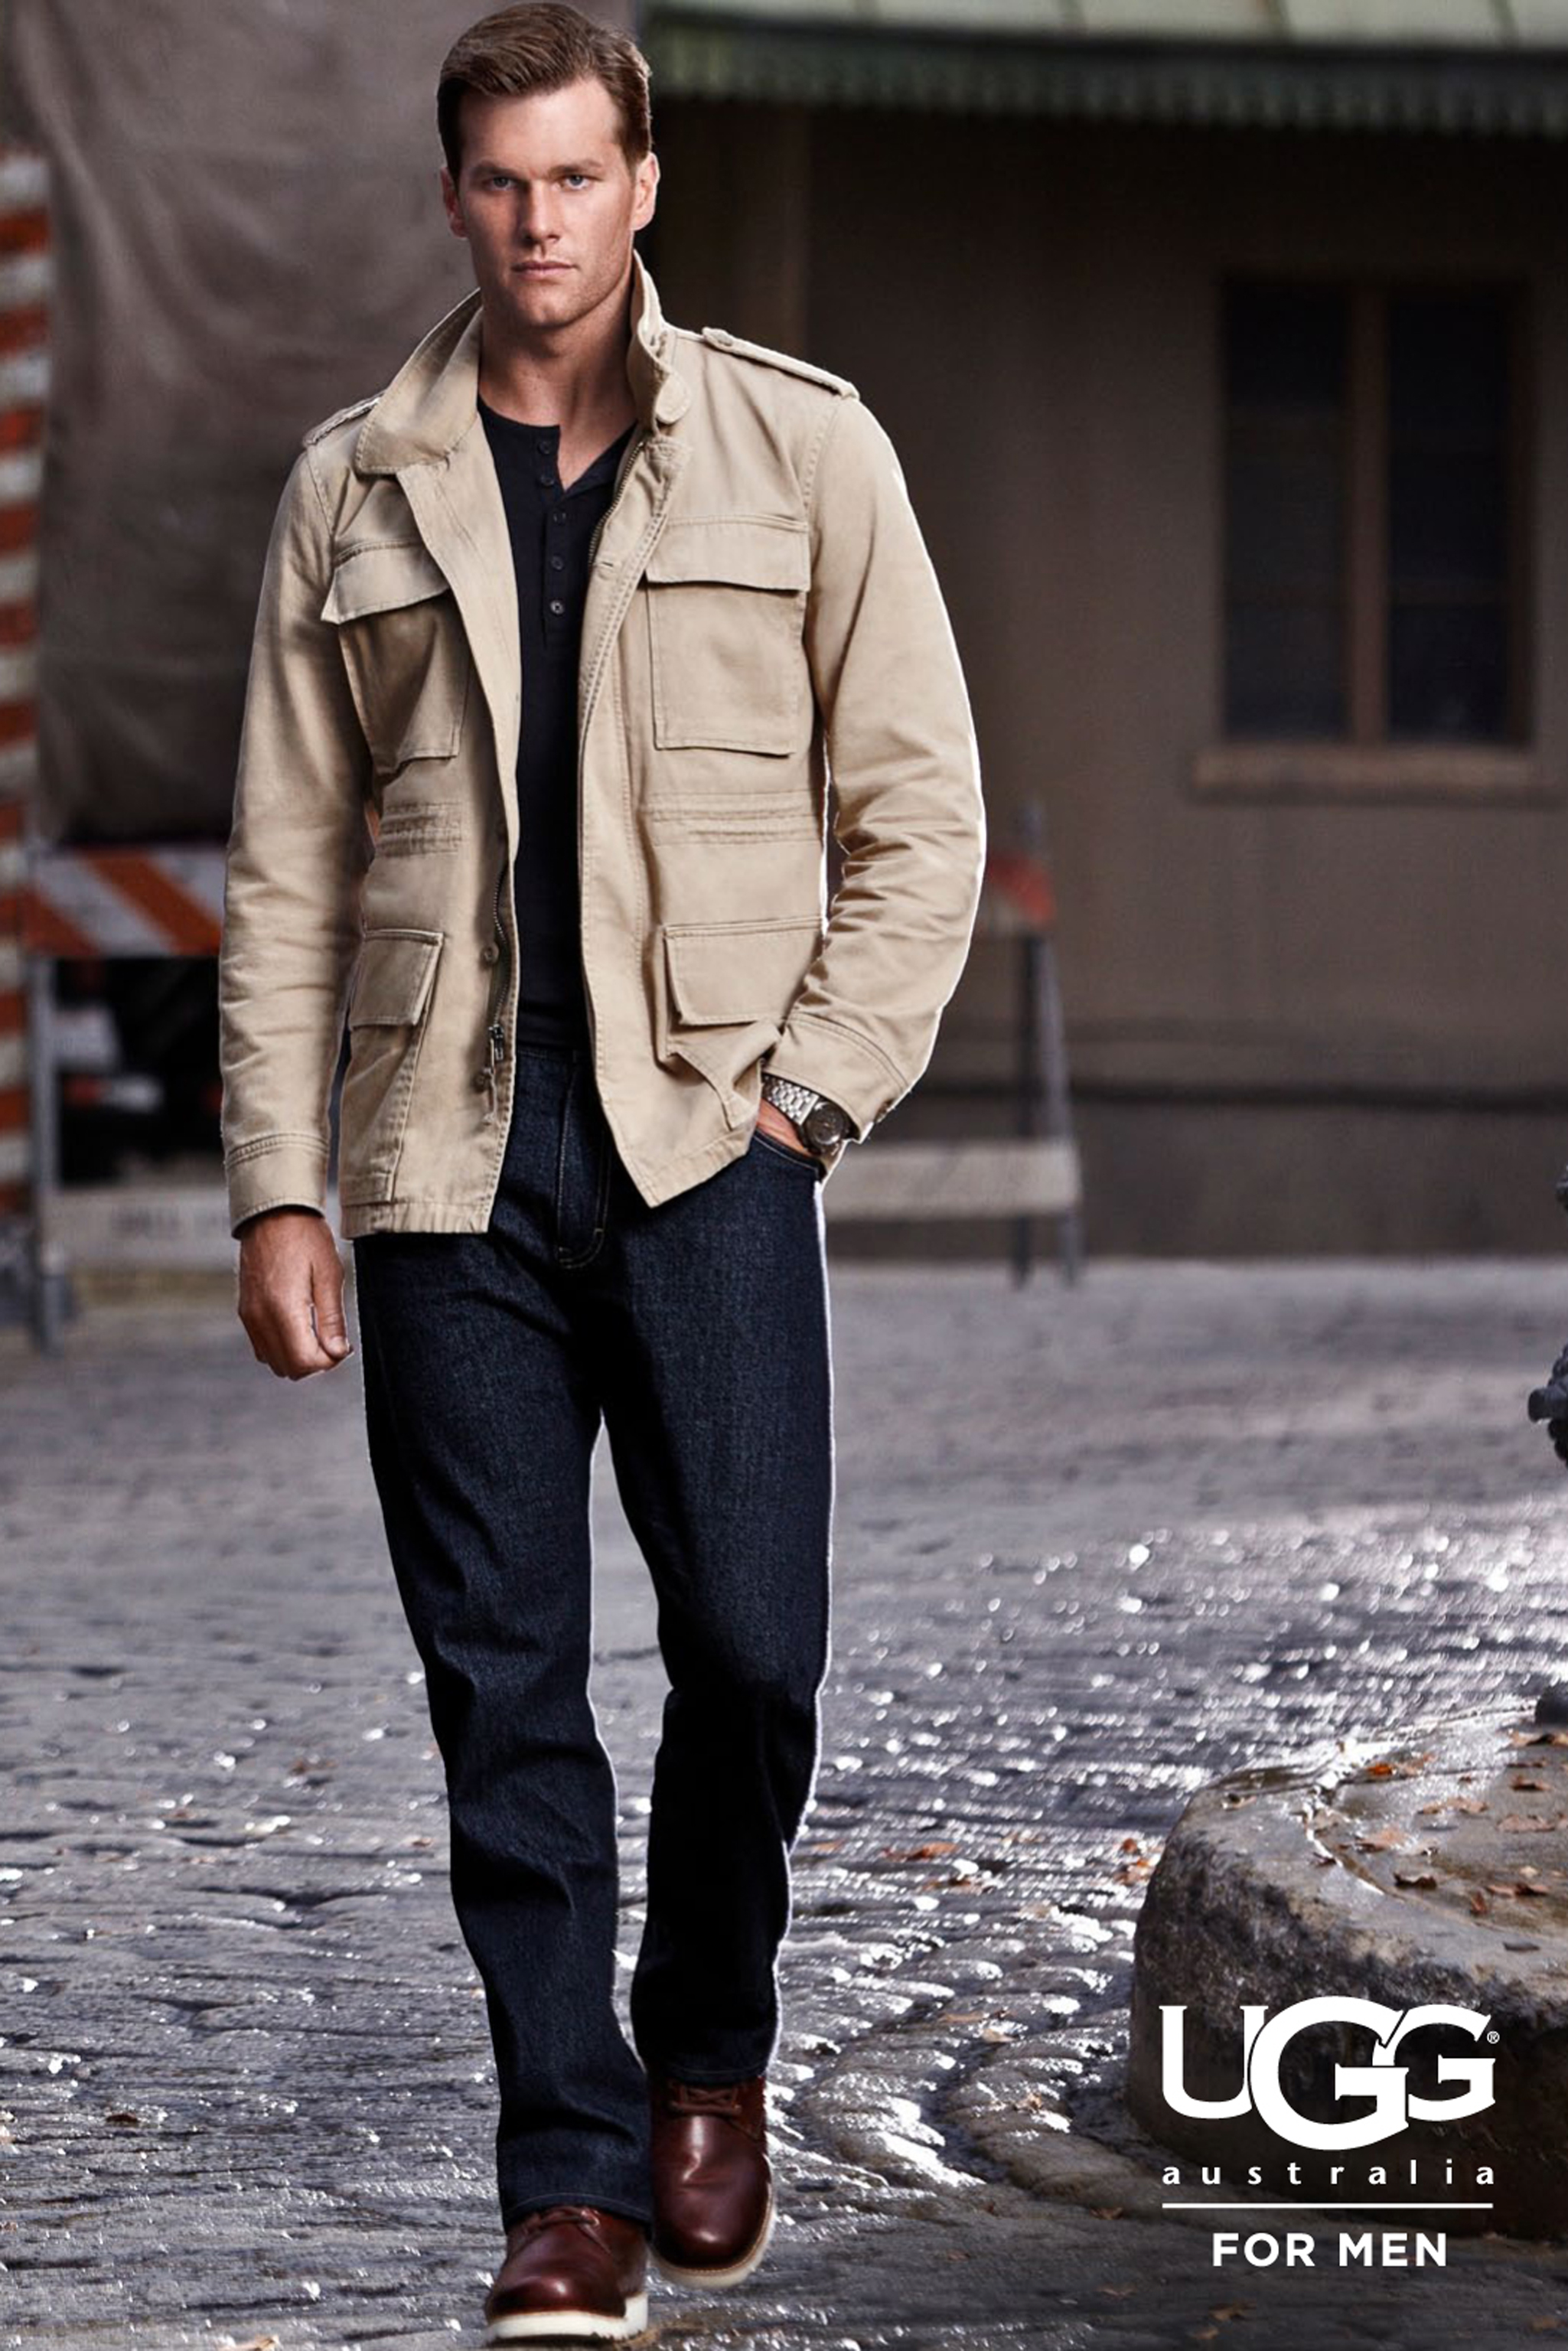 Tom Brady in ad campaign for Ugg.